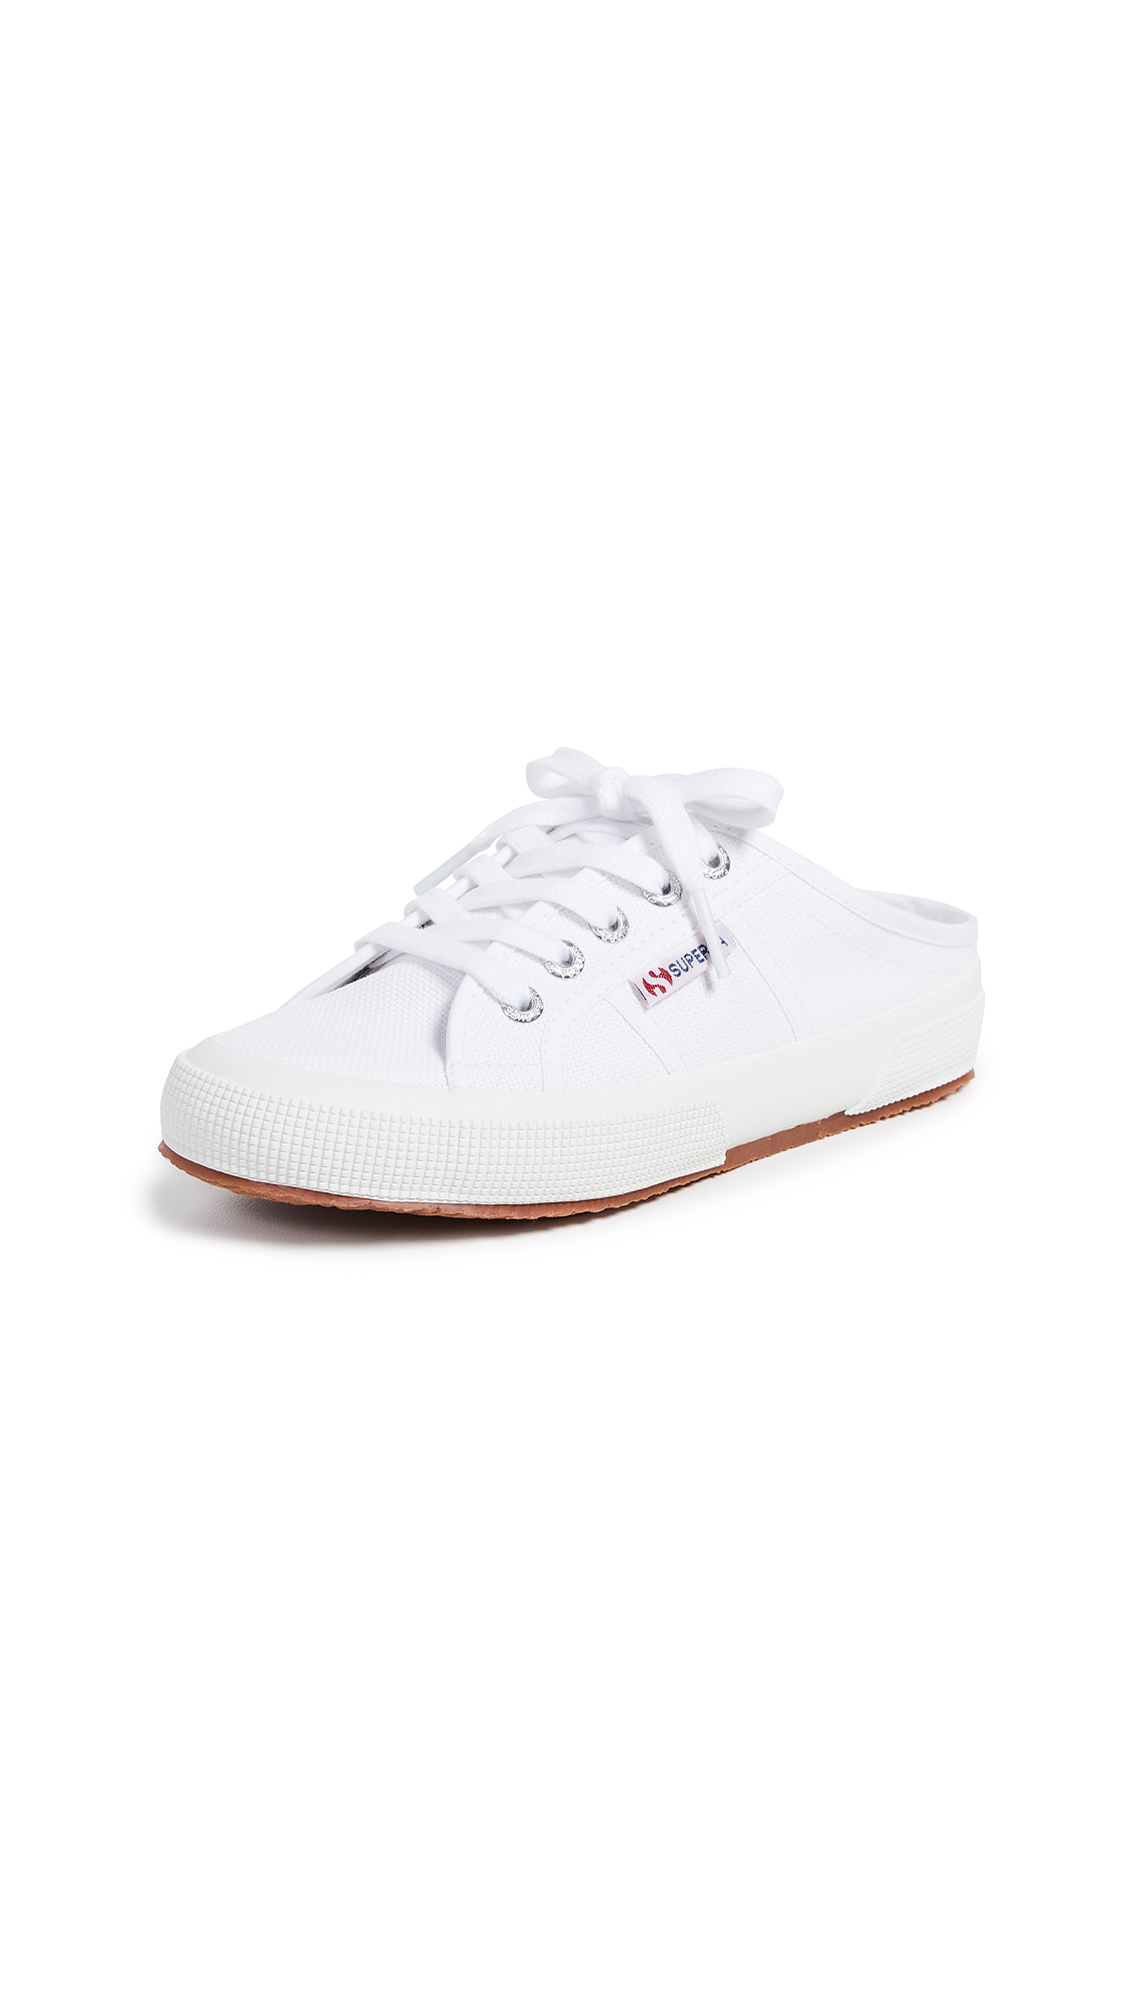 Superga Mule Sneakers - White